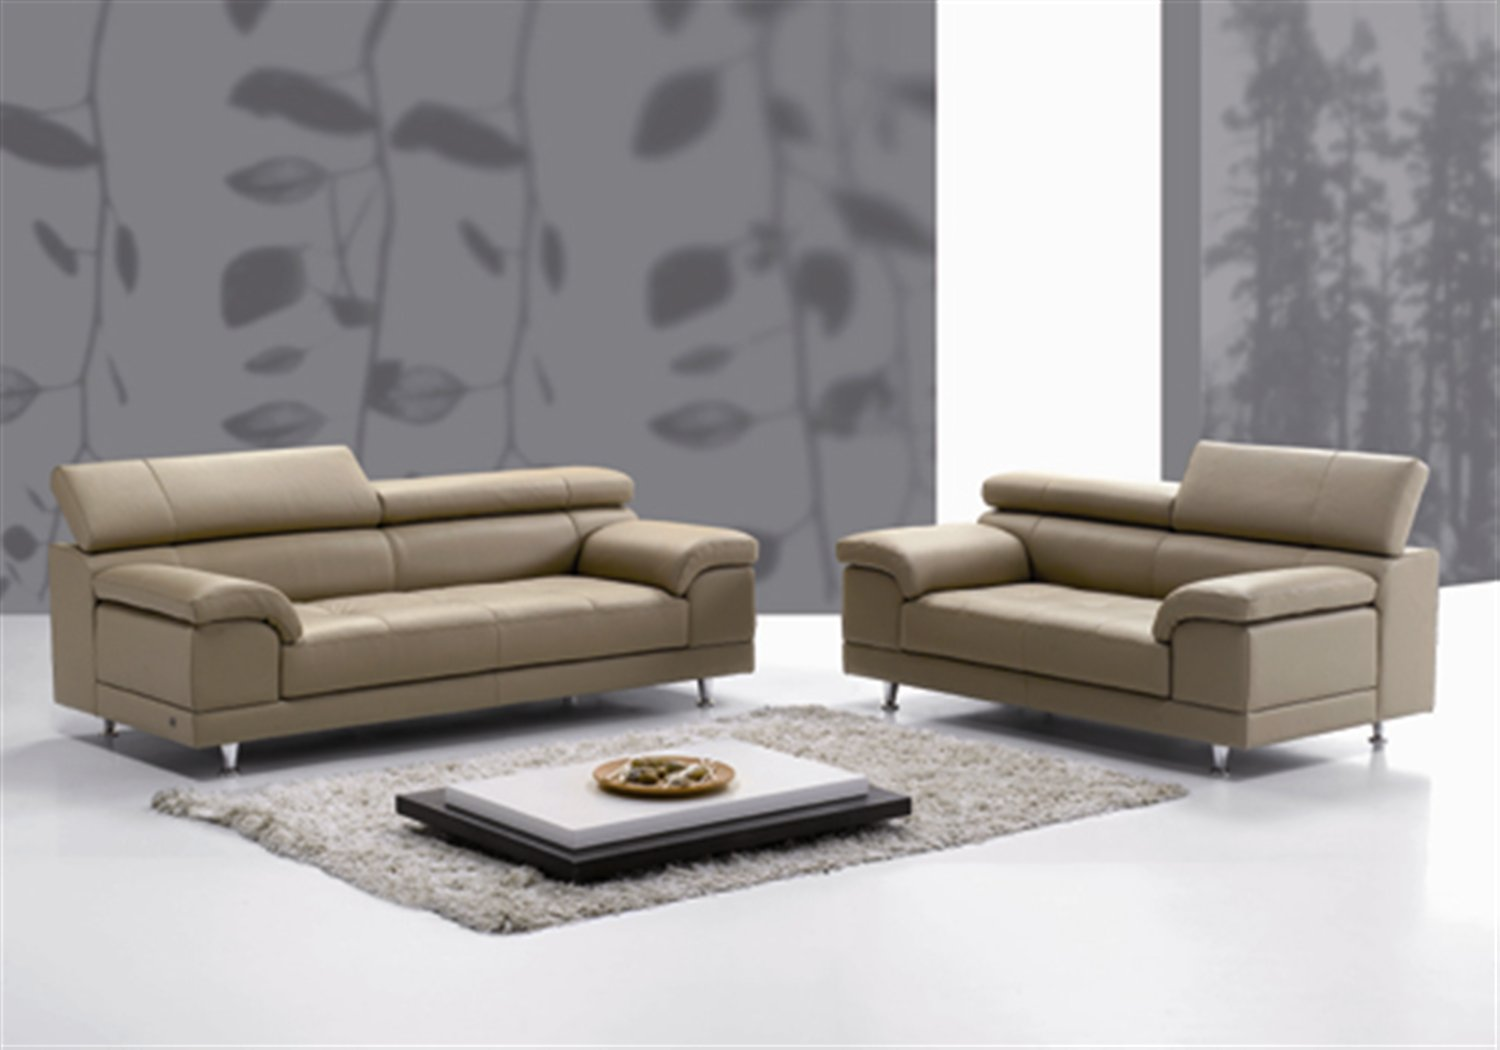 Italian leather sofas images for Leather sectional sofa